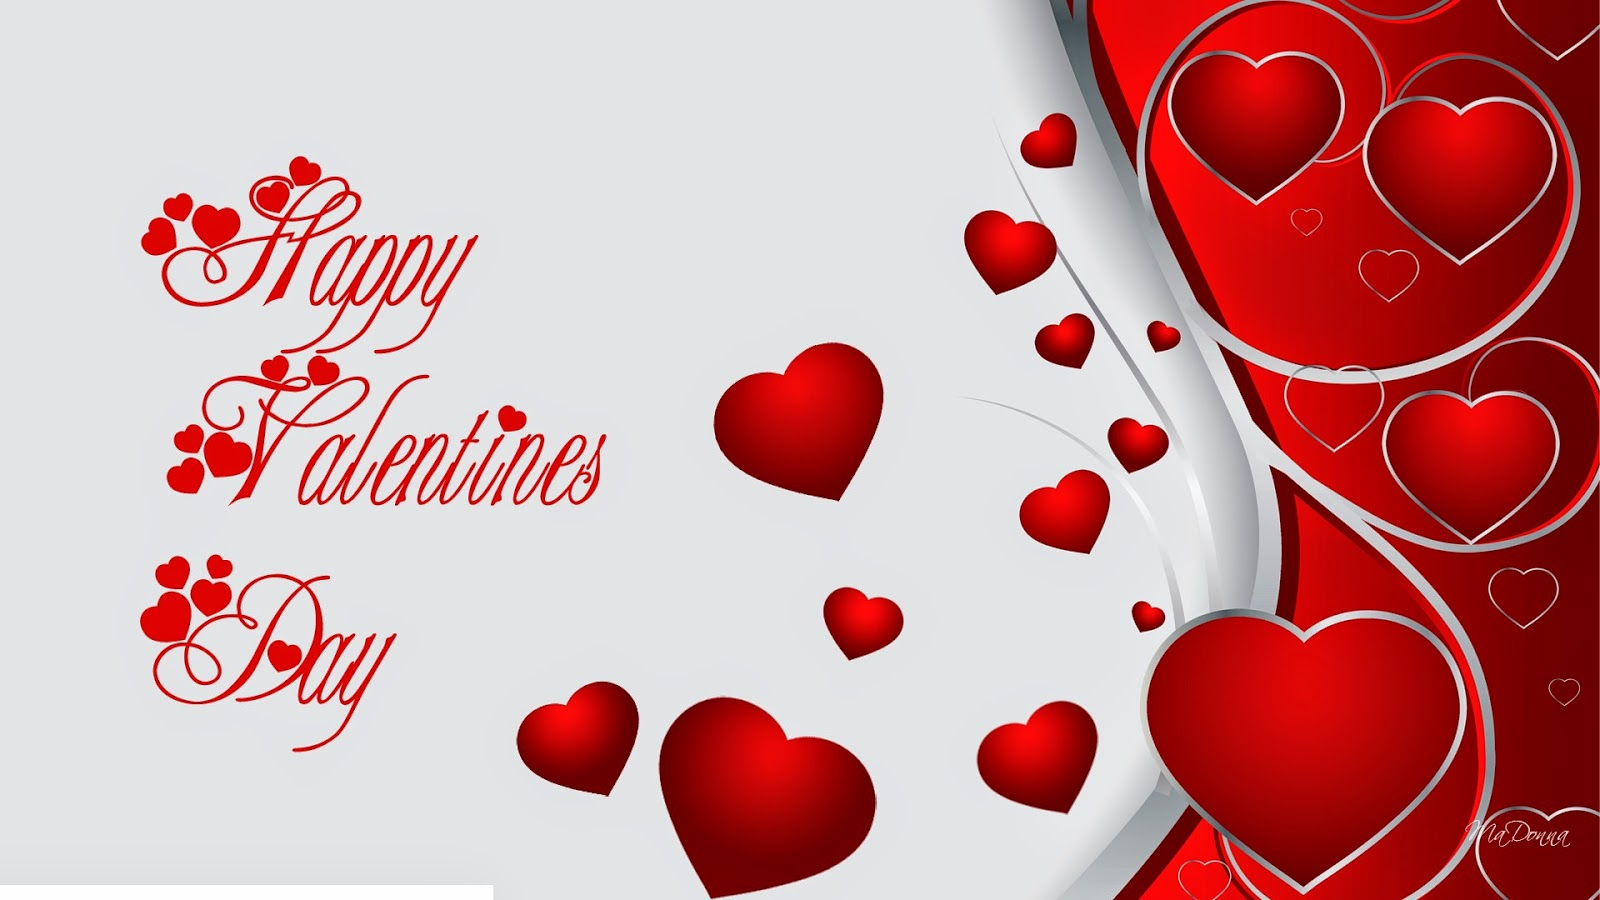 Happy Valentines Day 2016 Greeting Cards – San Valentines Cards